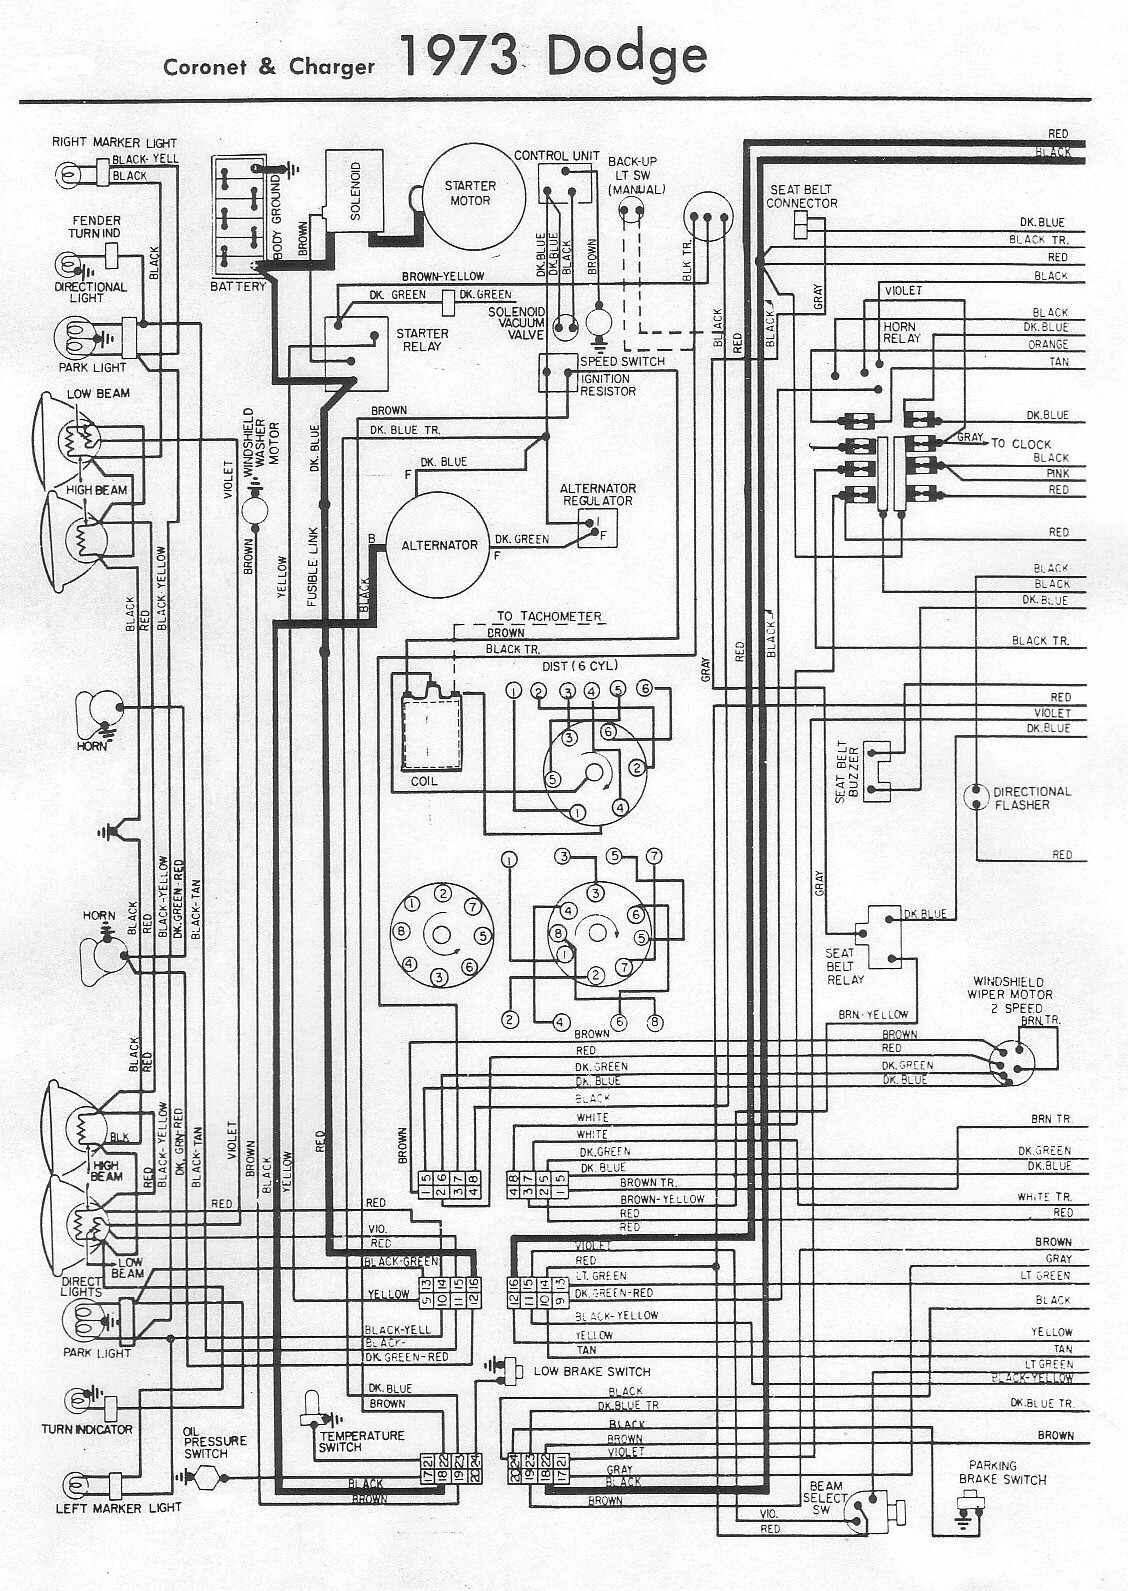 hight resolution of 1973 challenger wiring diagram simple wiring diagram detailed 1956 dodge truck wiring diagram 1973 dodge truck